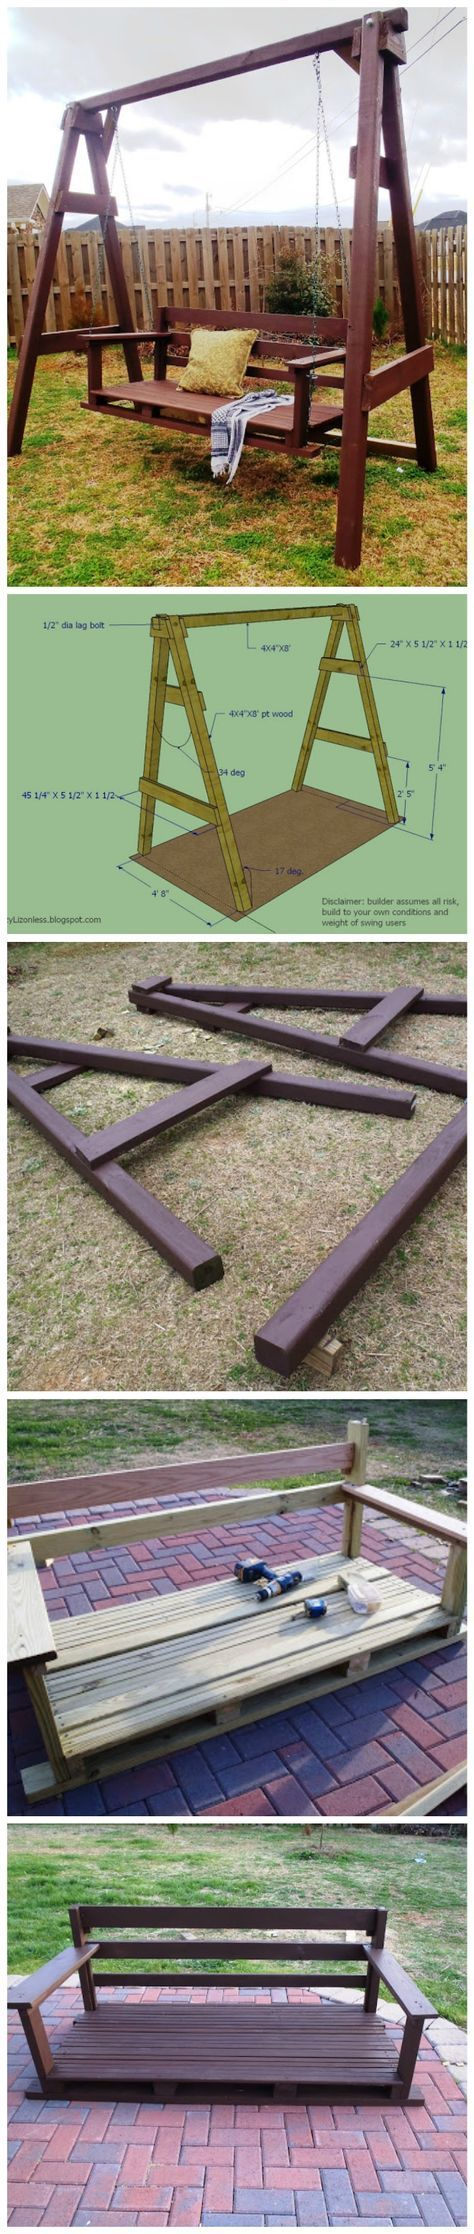 how to build a backyard swing set woodworking tips tricks and